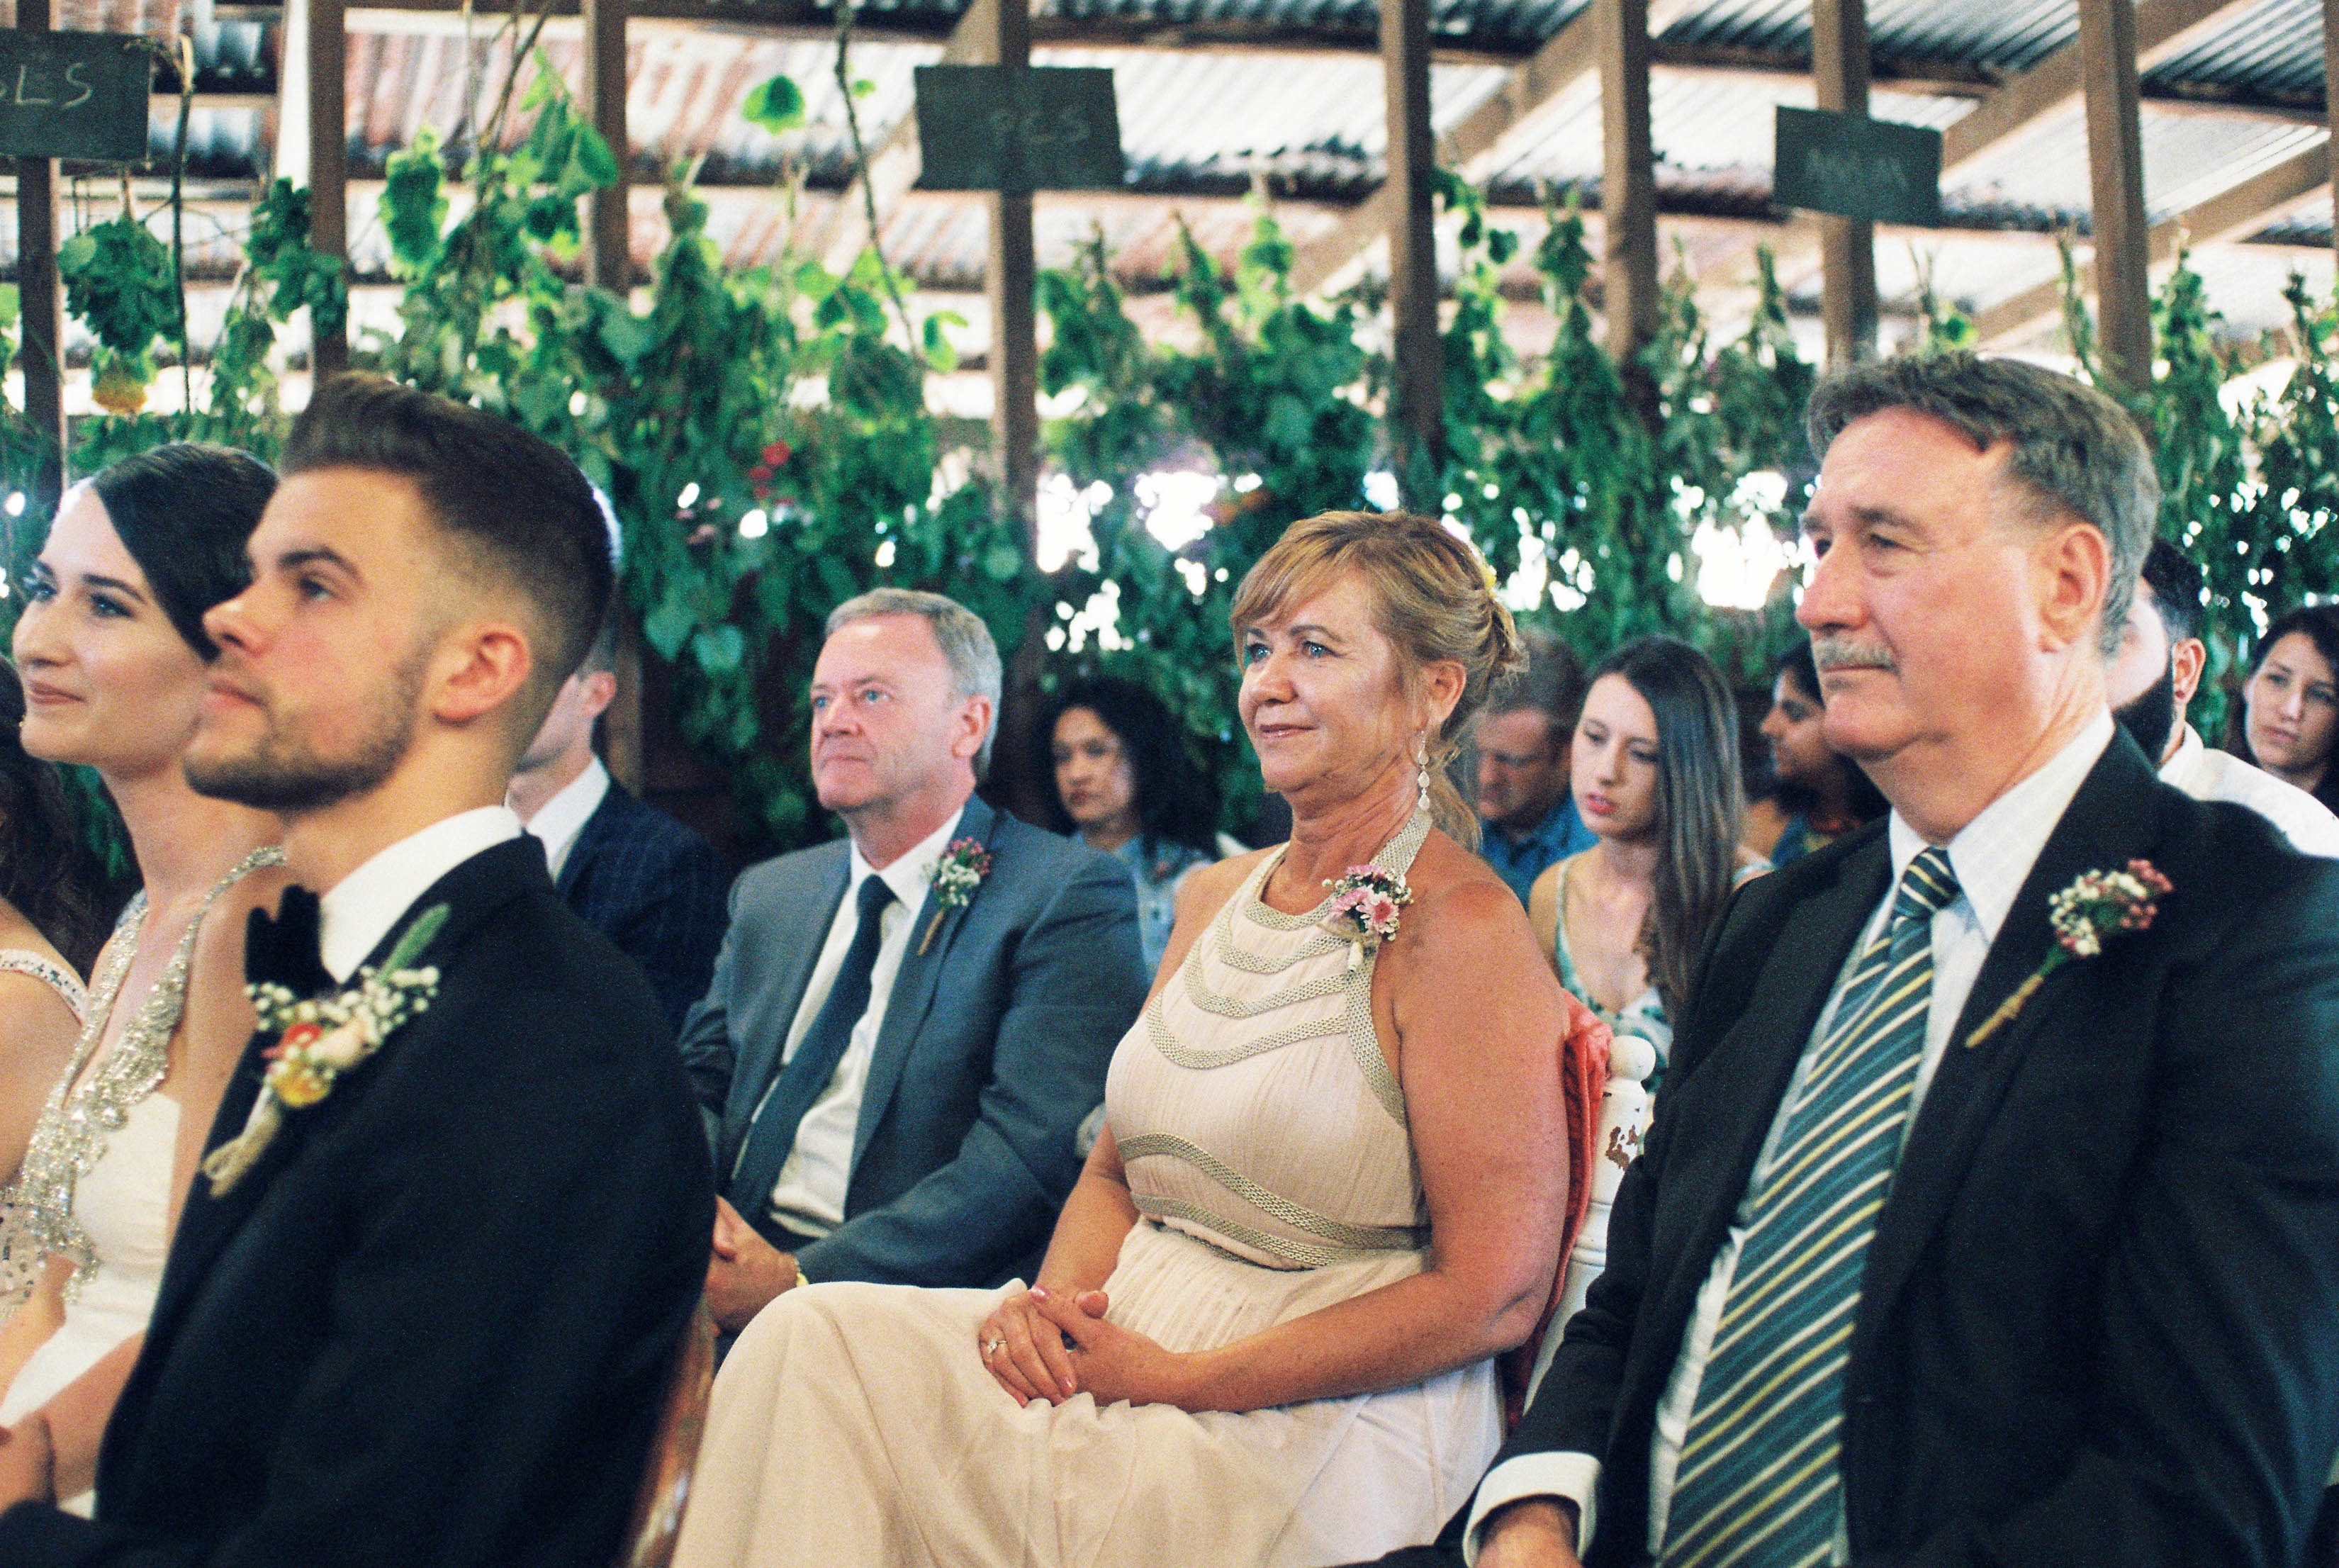 A photo of the bride's parents smiling during a shearing shed wedding ceremony